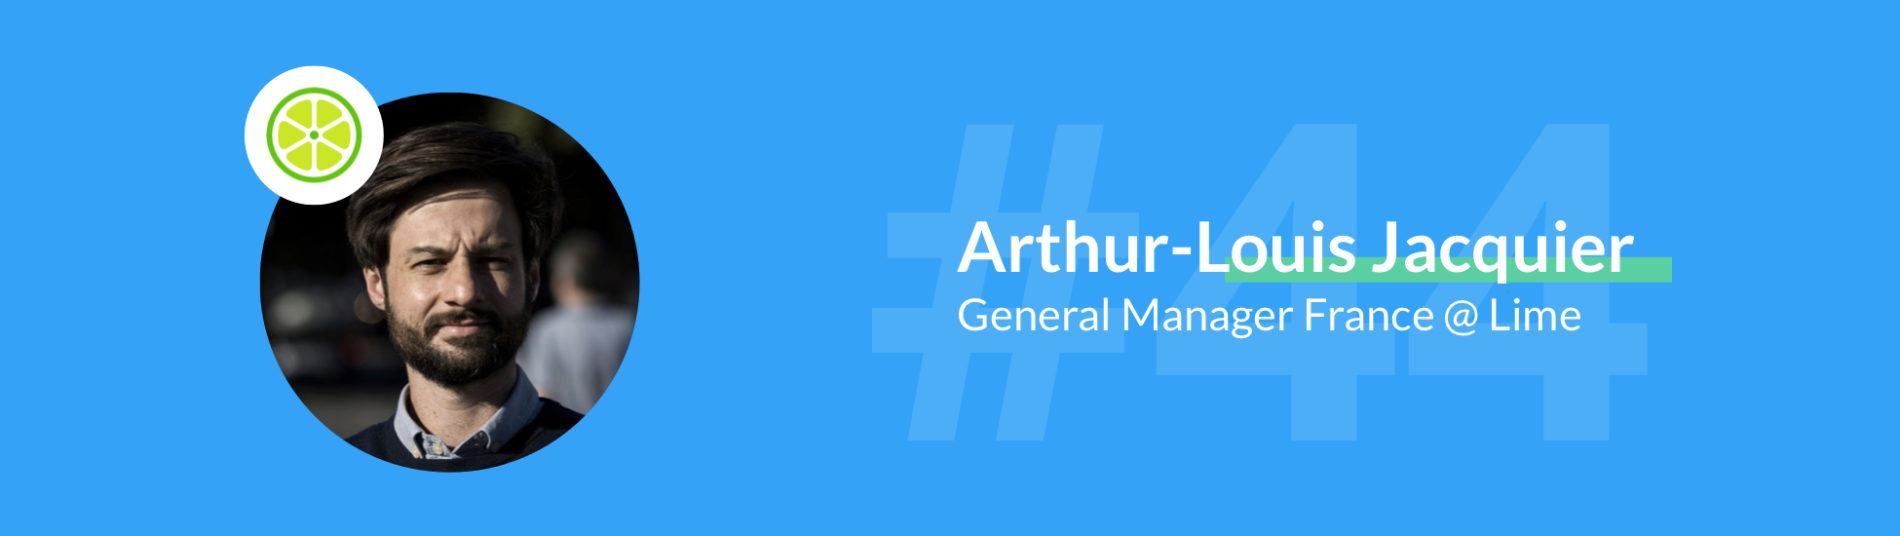 lime arthur louis general manager